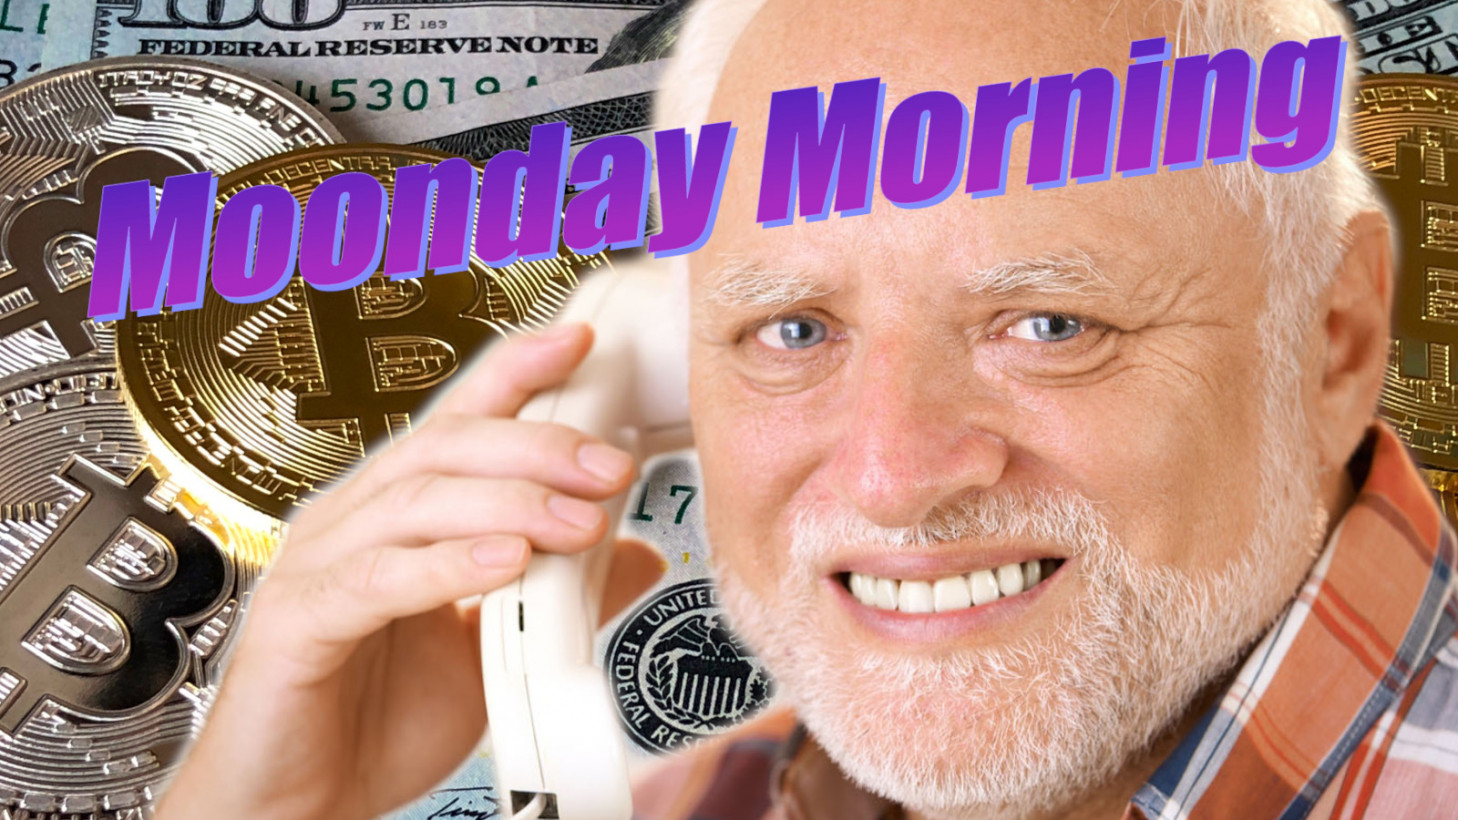 Moonday Mornings: Coinbase stored 3,420 passwords in plain text